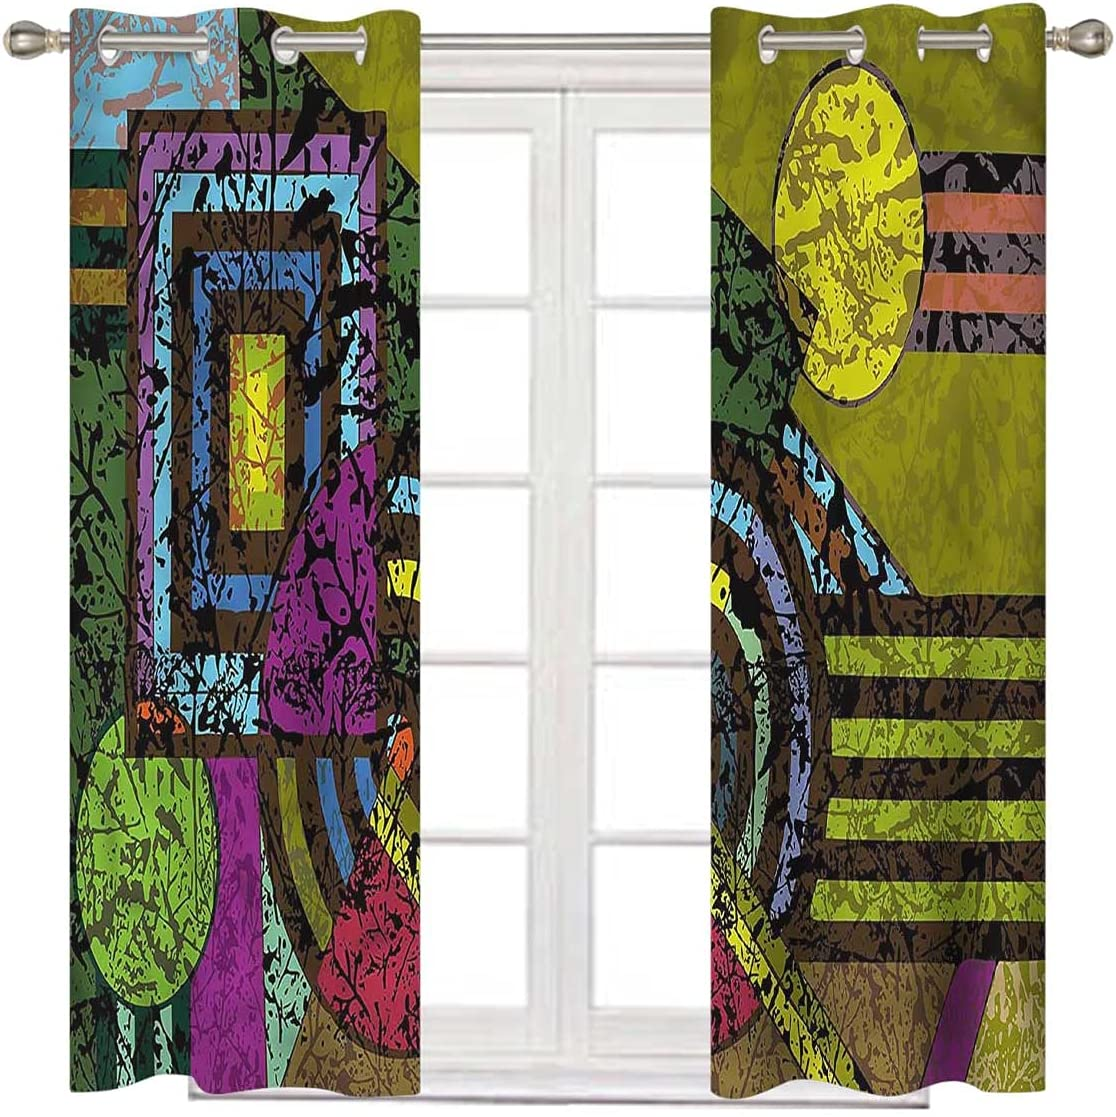 Abstract Grommet Long-awaited Curtain Time sale Panel 63 Murky Grunge Trippy Inch Long